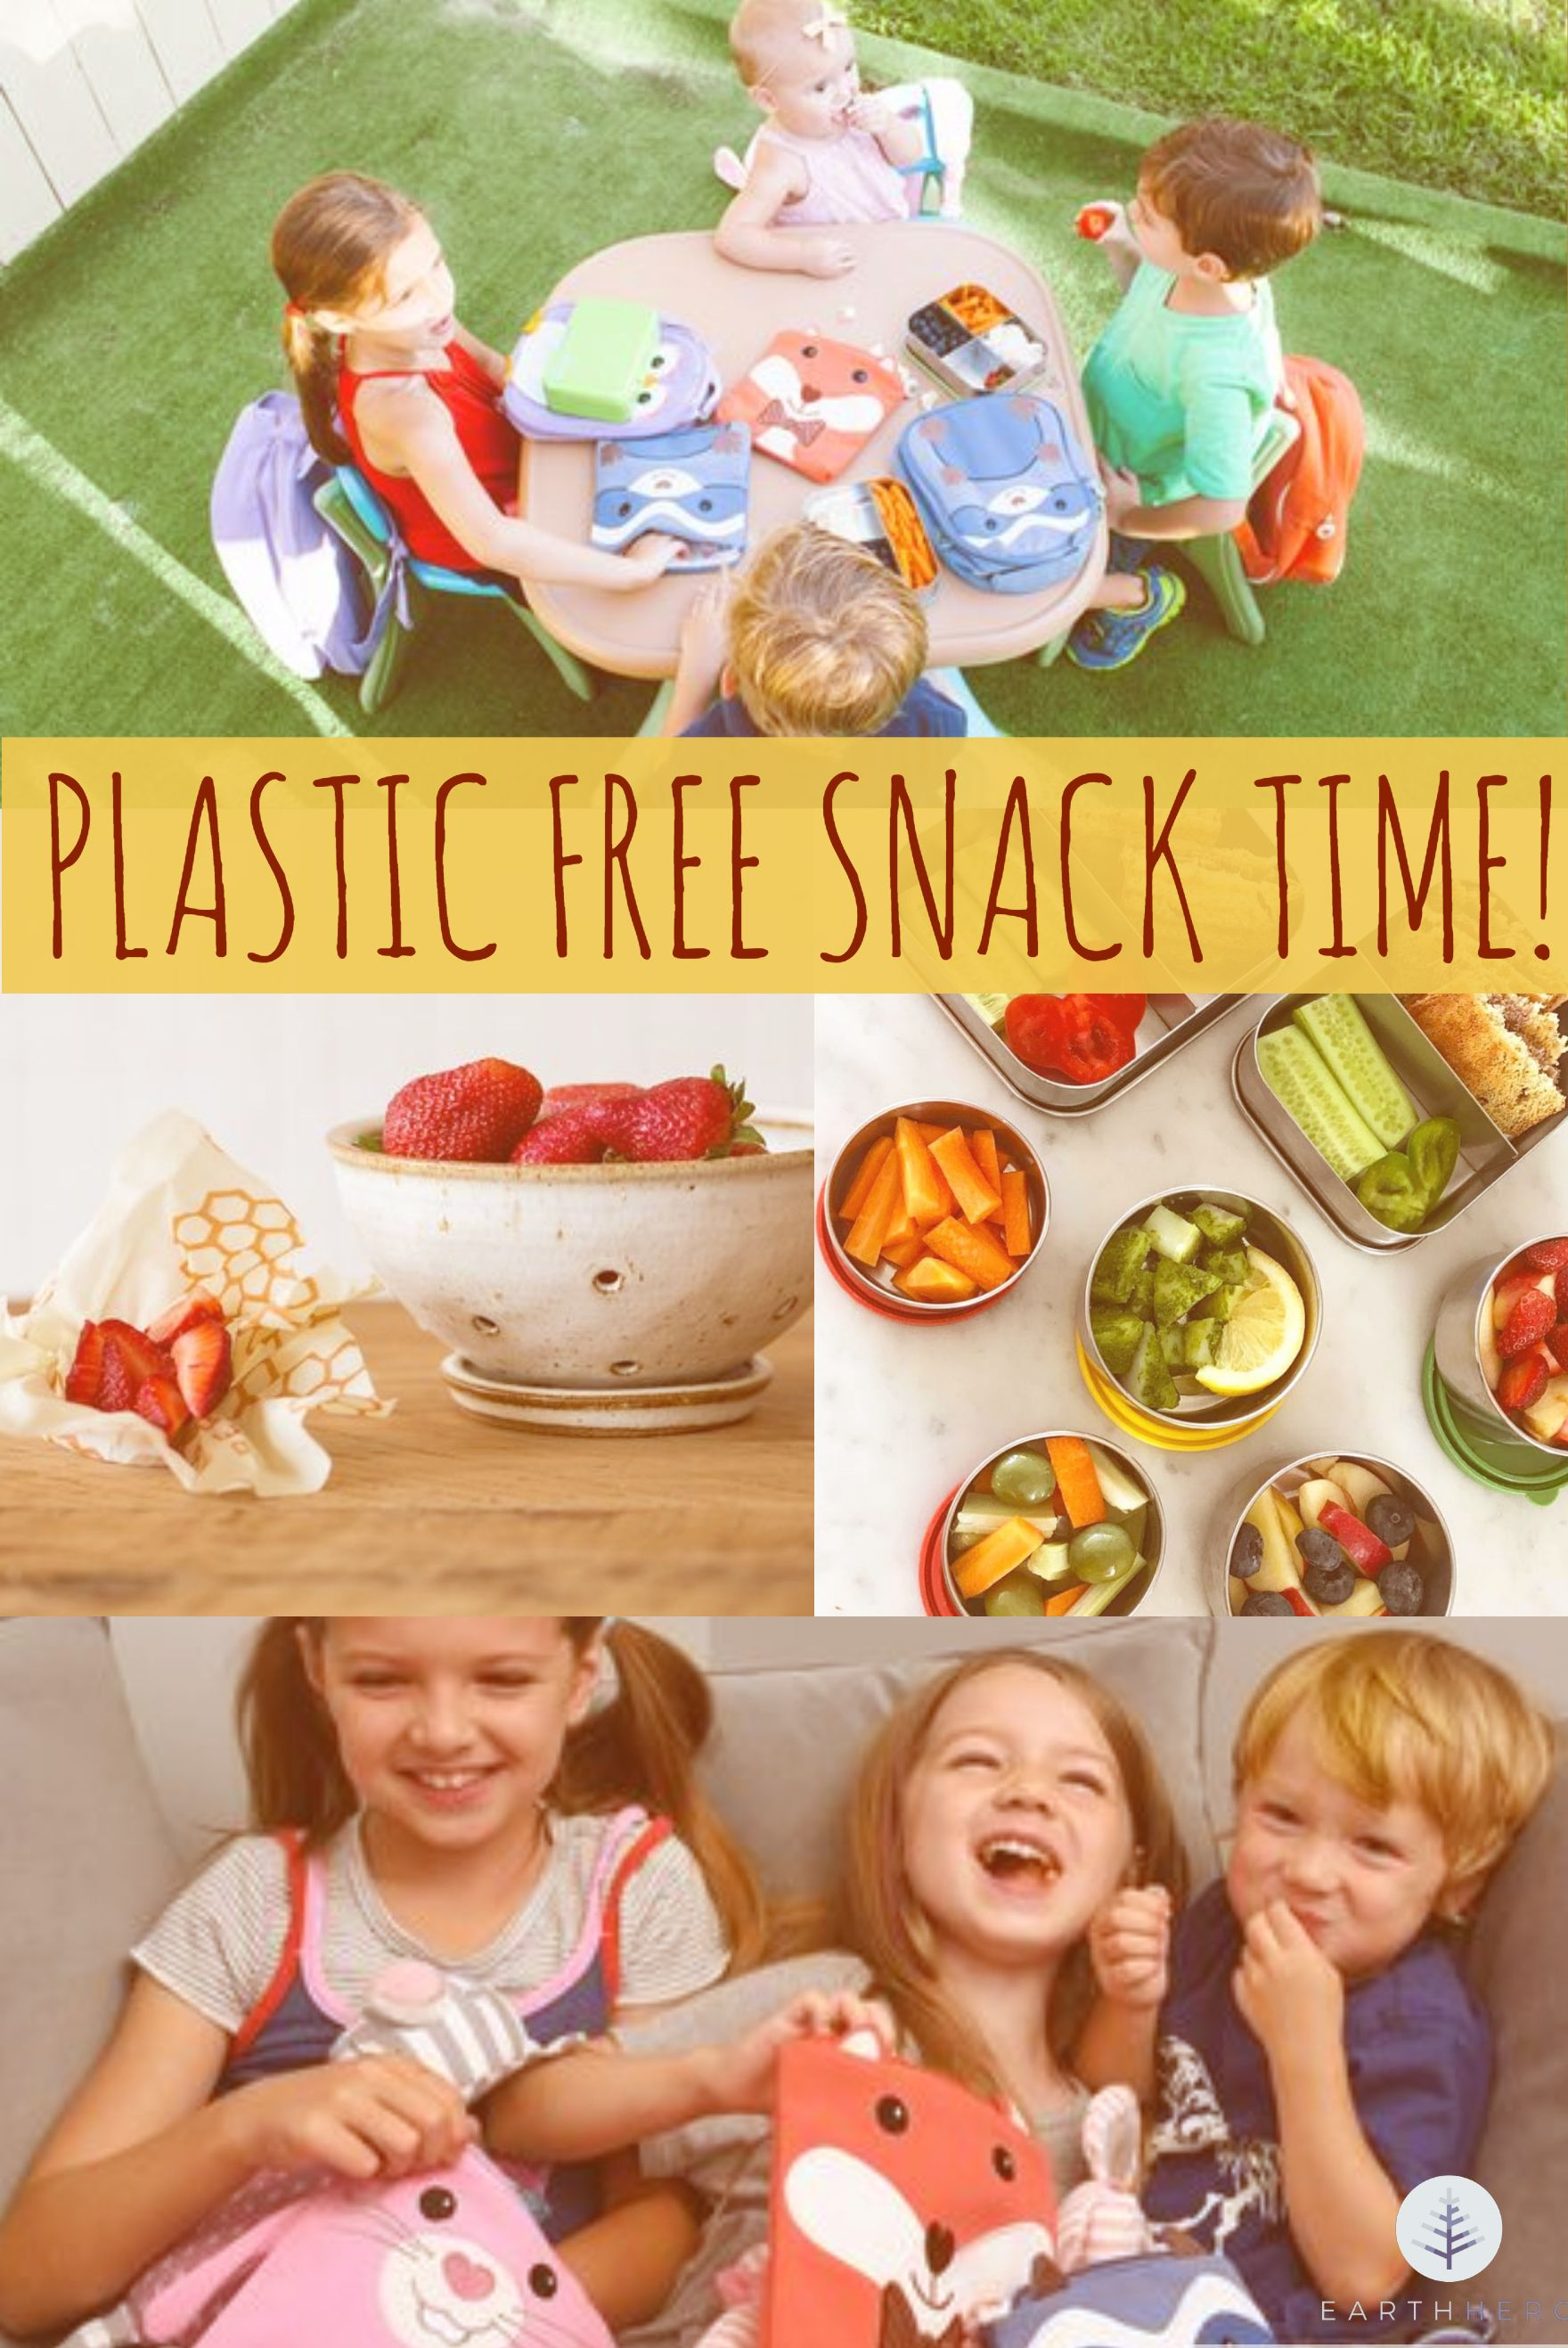 After school or after camp snacks, make them all plastic